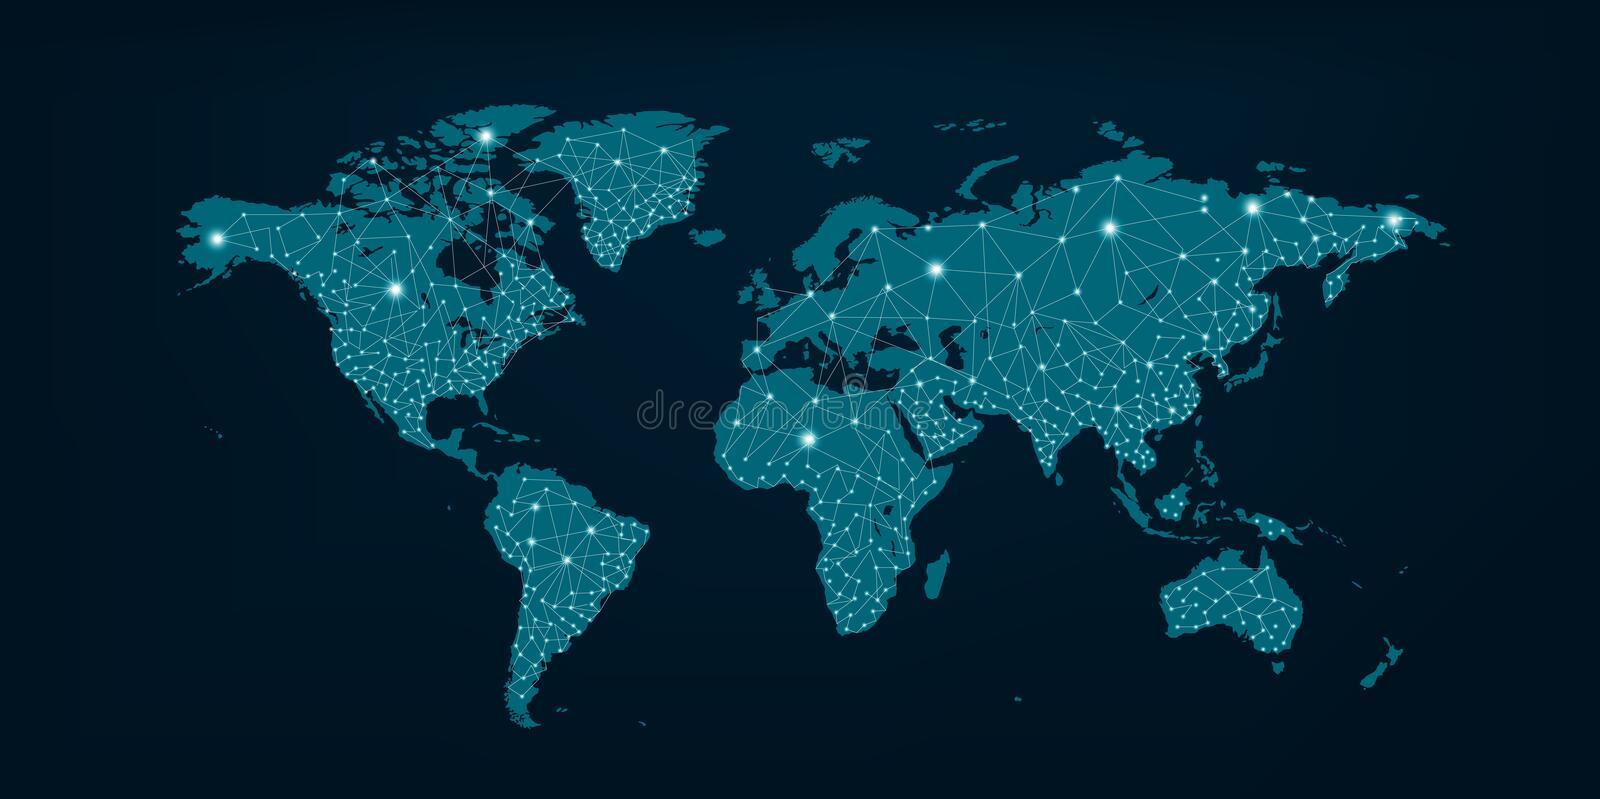 Communications network map of world Blue map Dark blue background stock photos